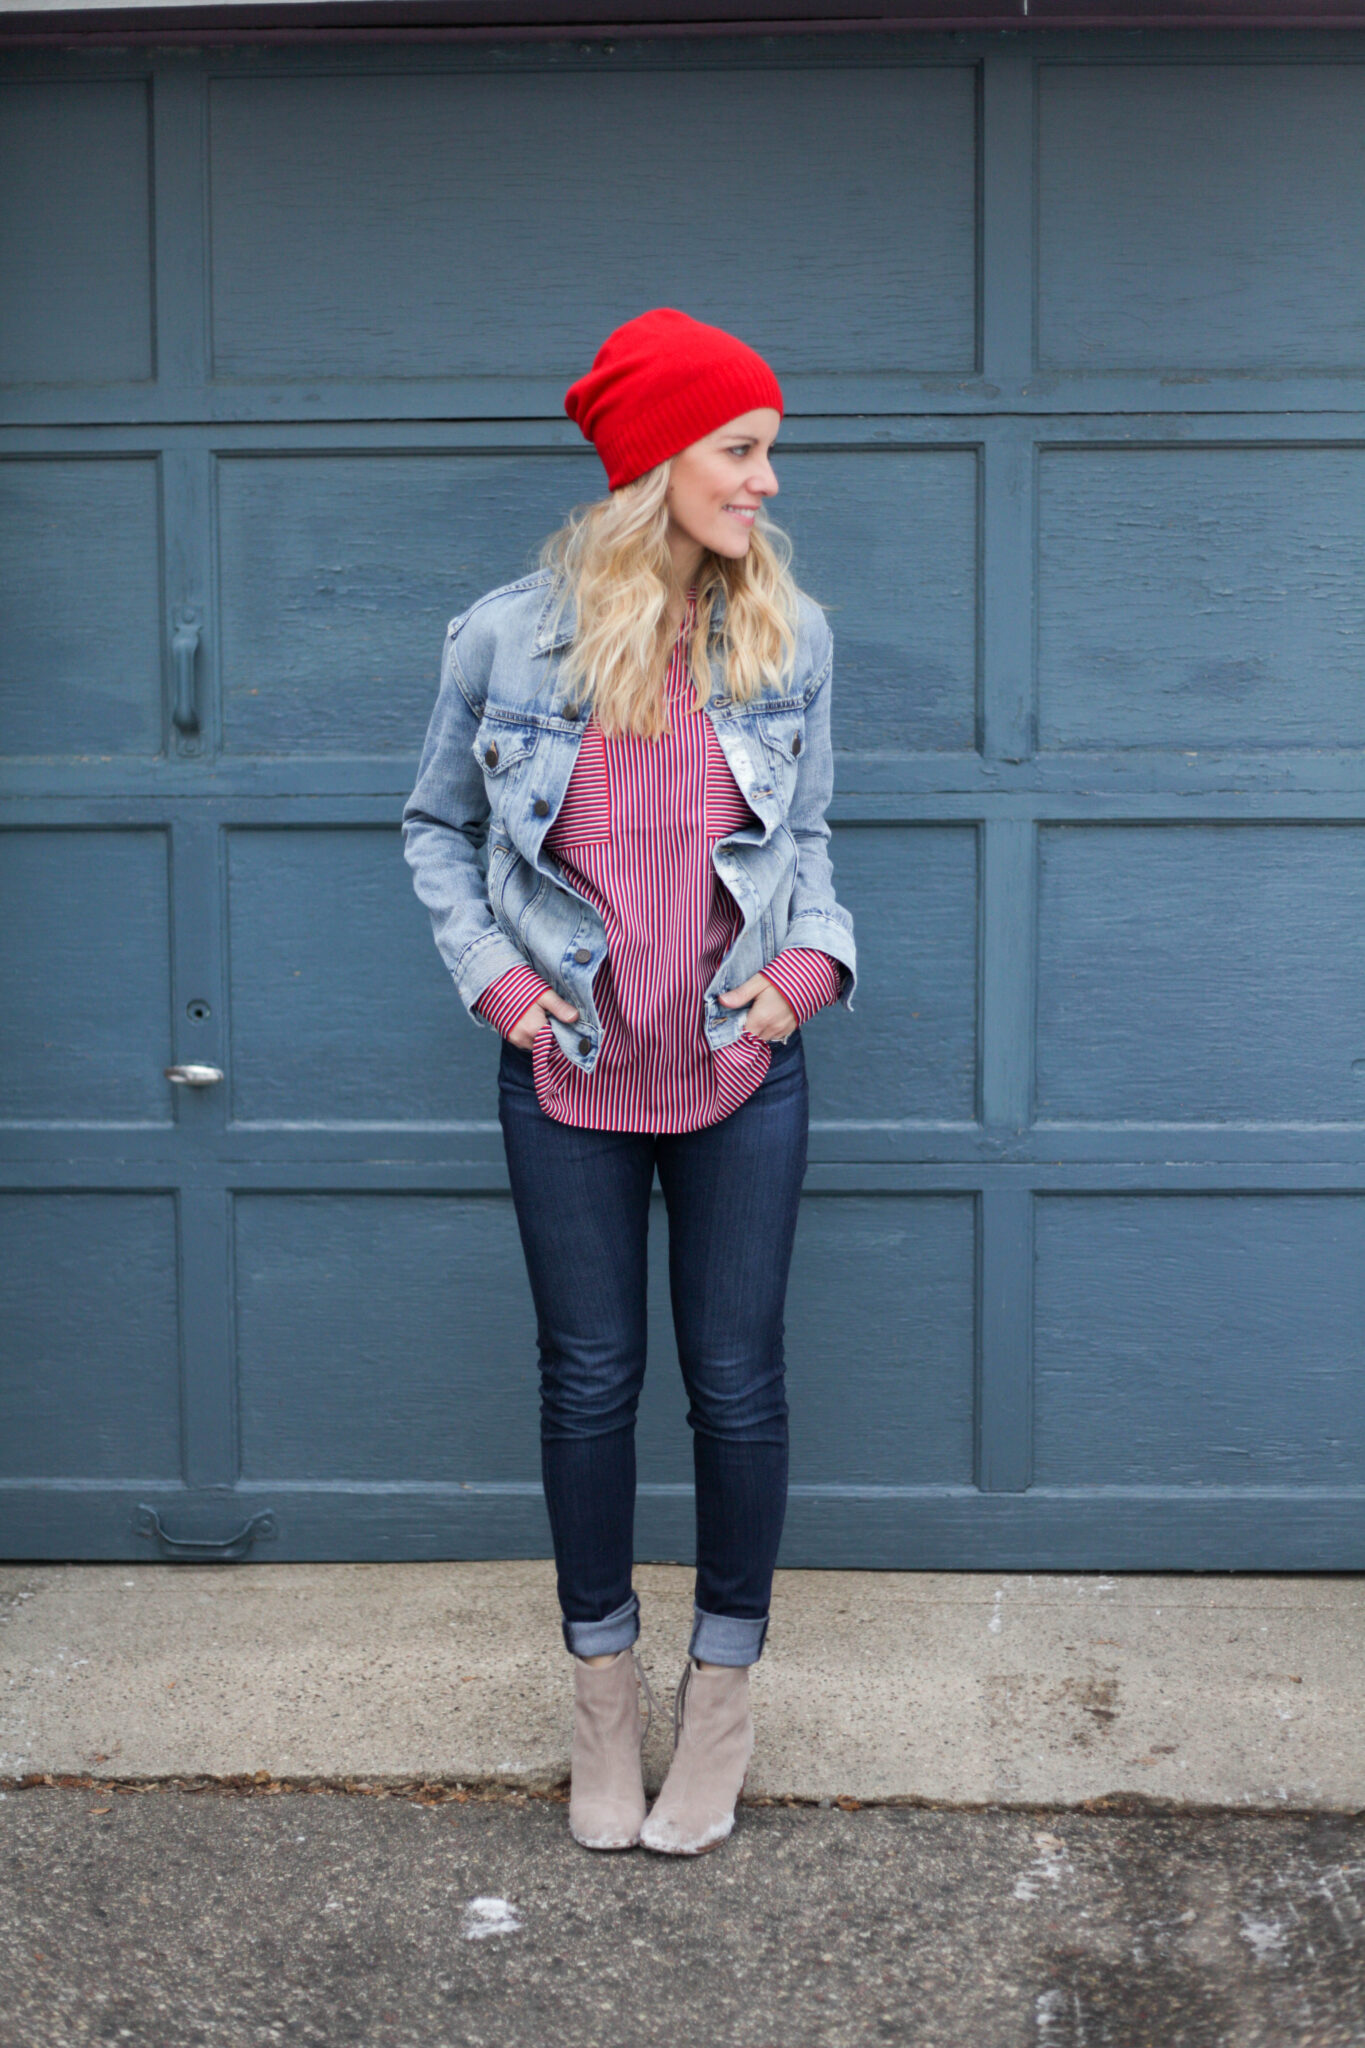 Denim on denim outfit with a red hat- the Canadian tuxedo!